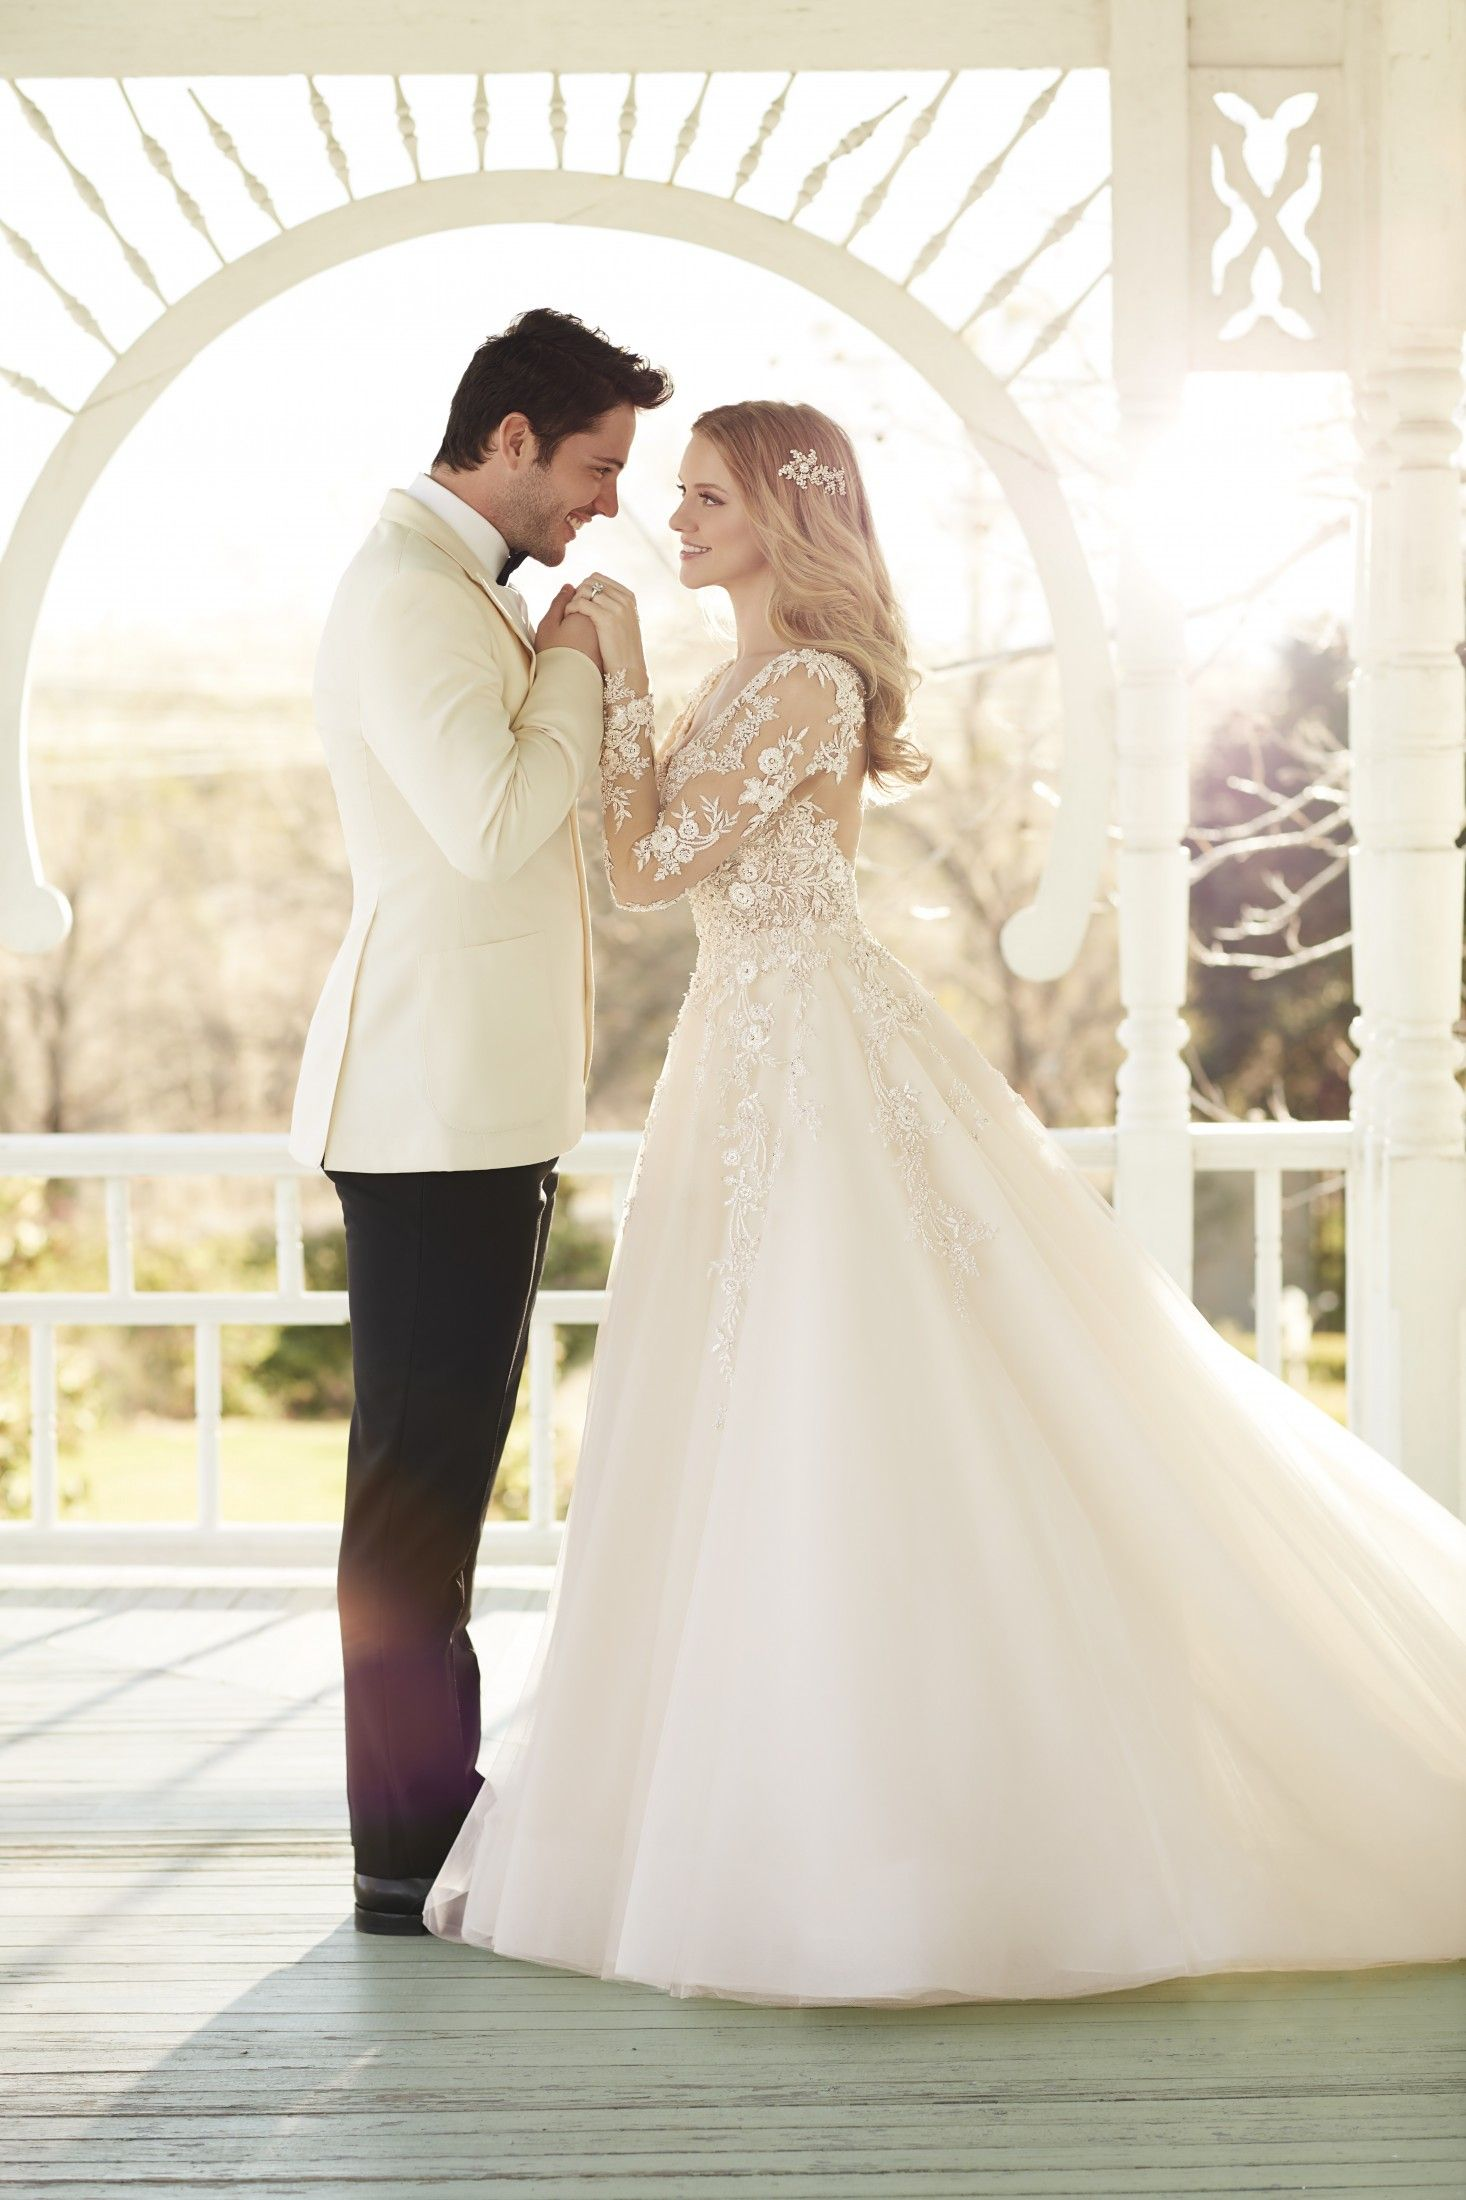 18c05a3d4f This designer wedding dress from Martina Liana features illusion lace  sleeves